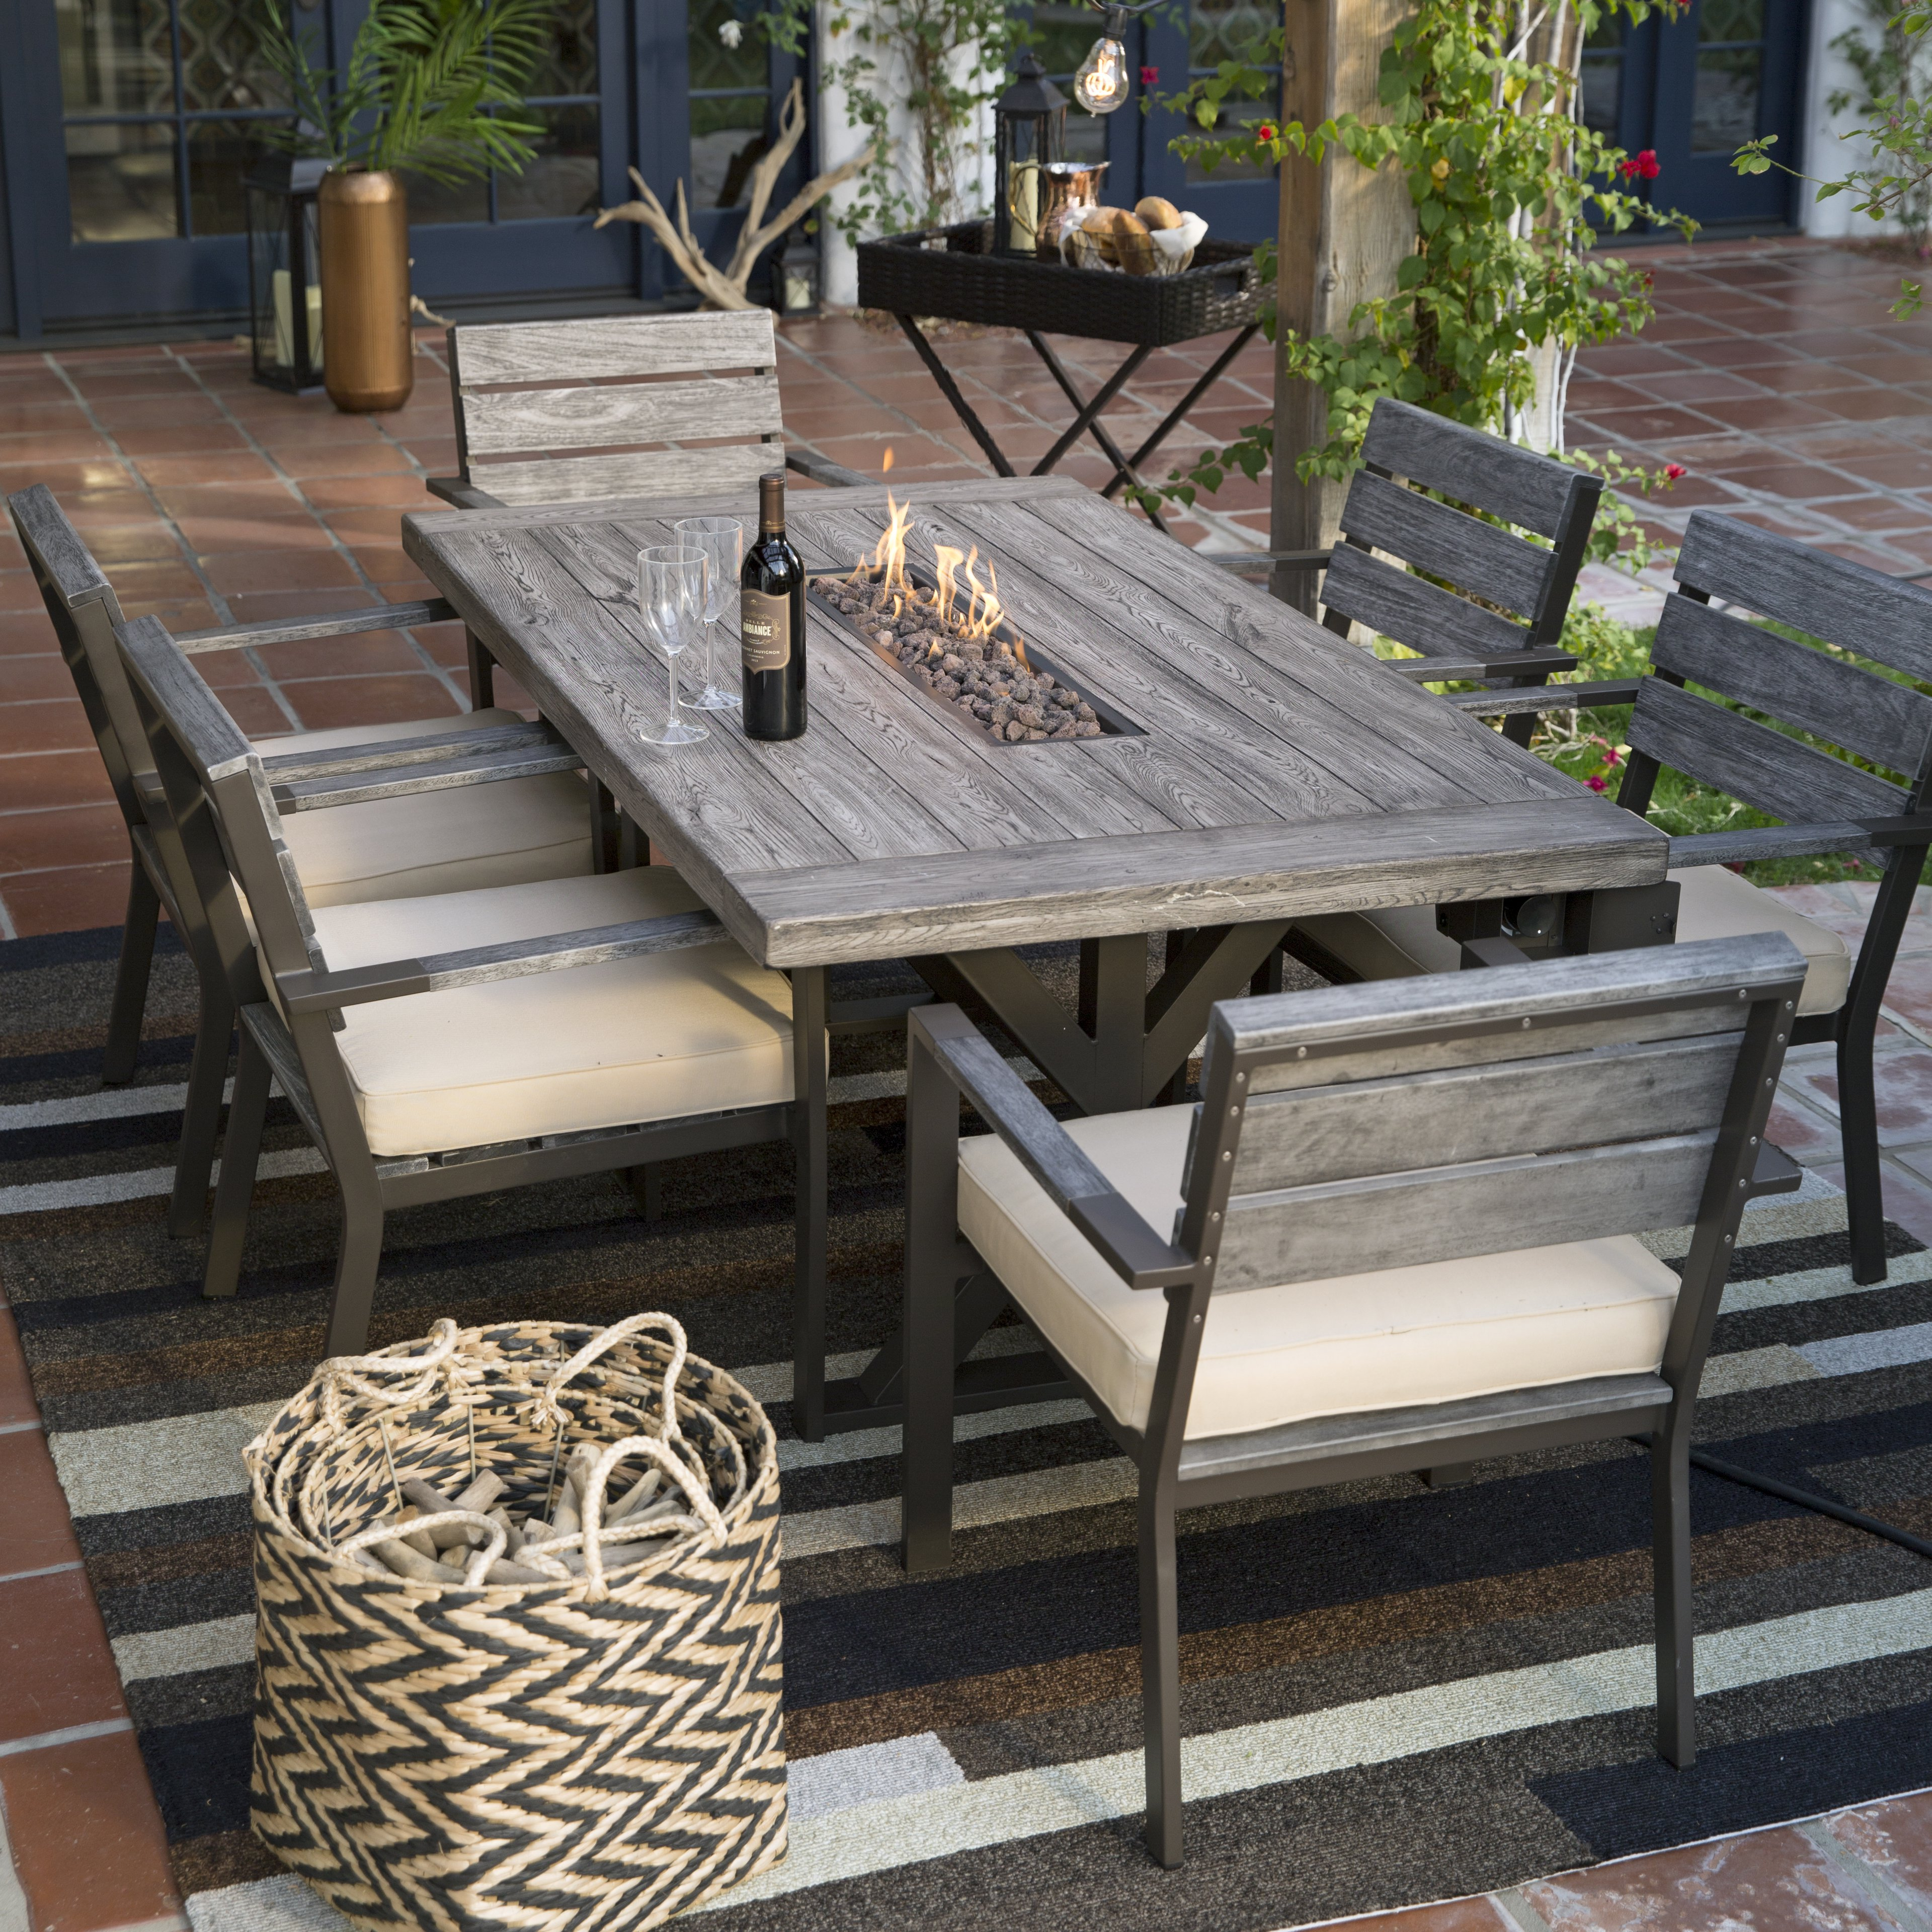 patio dining sets master wicker storage accent table belham living silba piece envirostone fire pit set mosaic top coffee extra tall shades light coupon astoria large white very